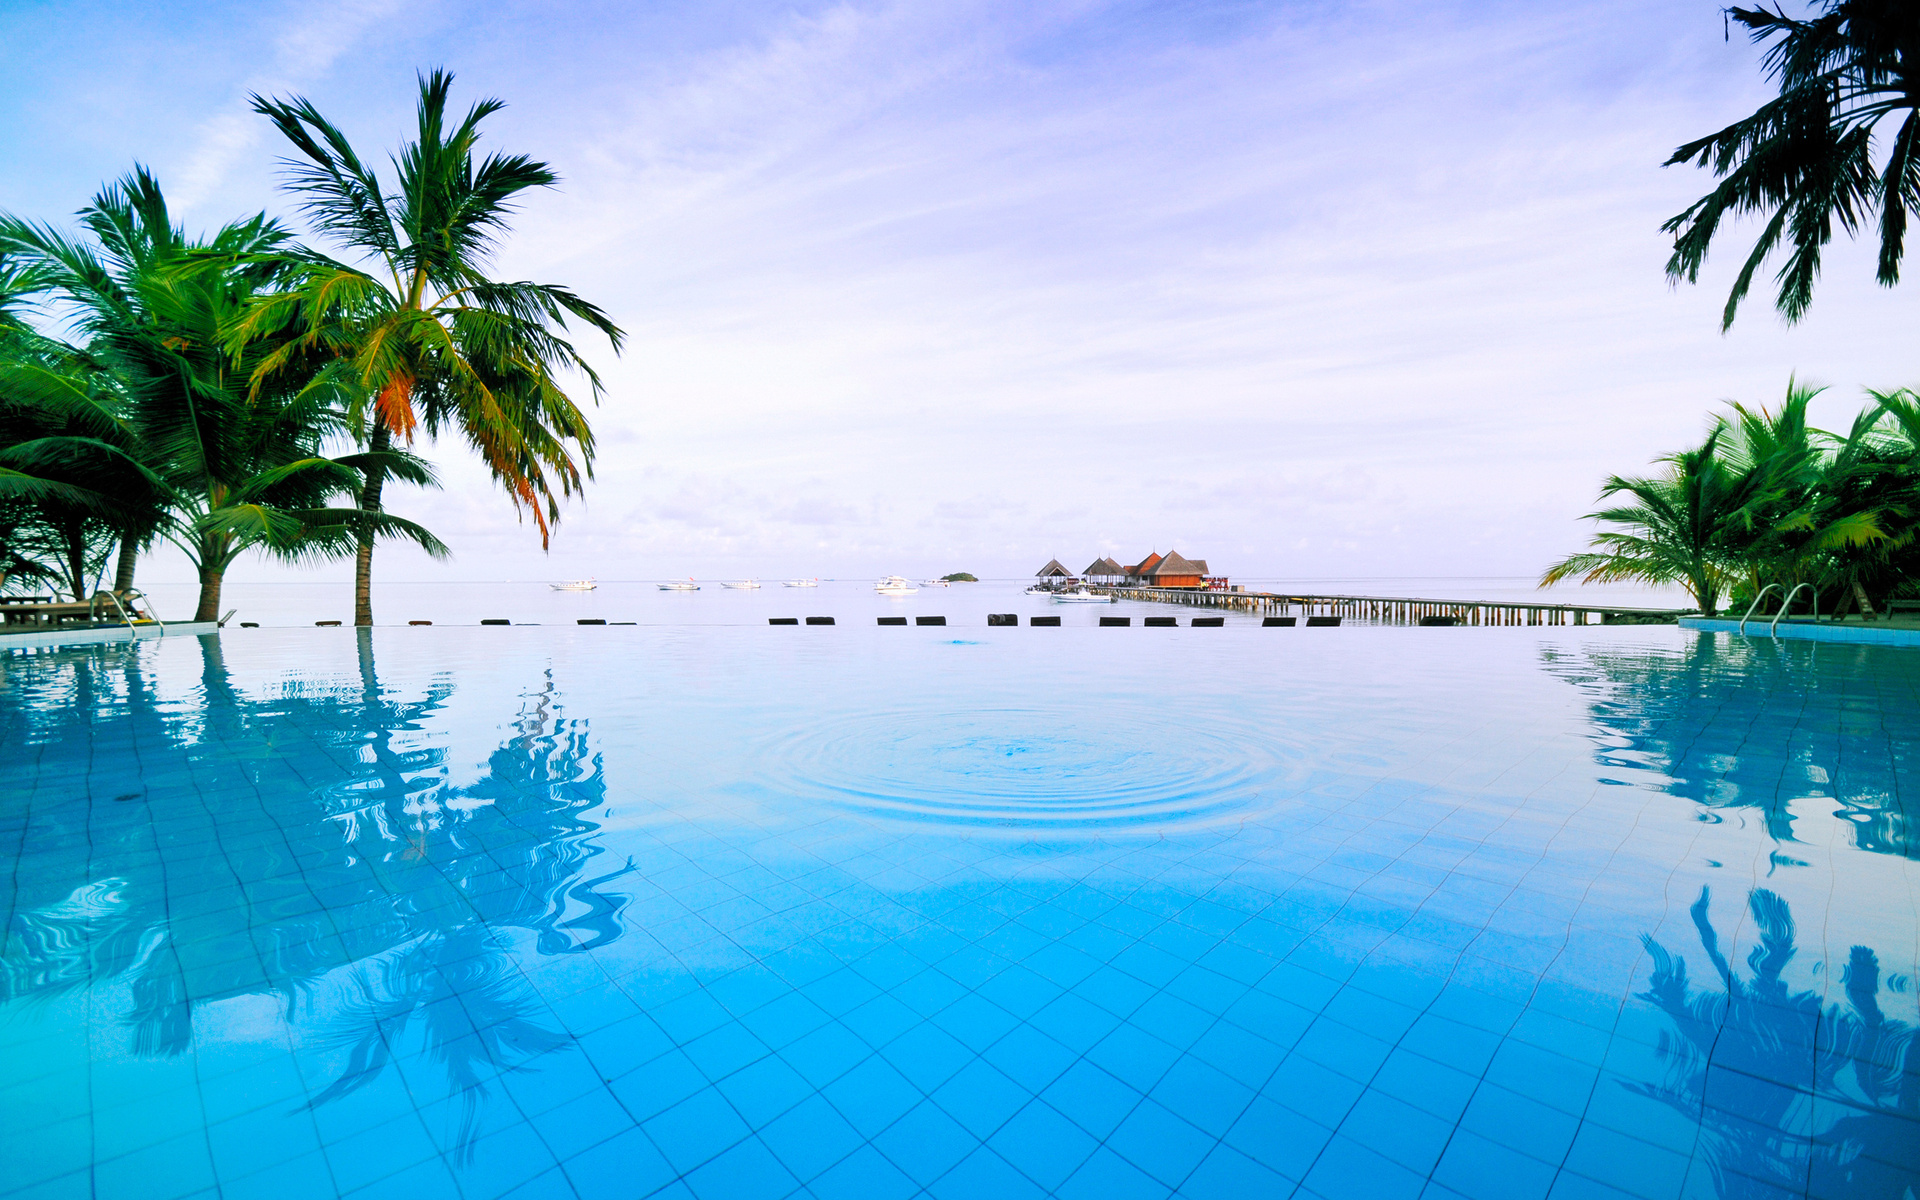 Pool Reflection Mood Zen Ripple Tropical Ocean Relax Vacaction Wallpaper